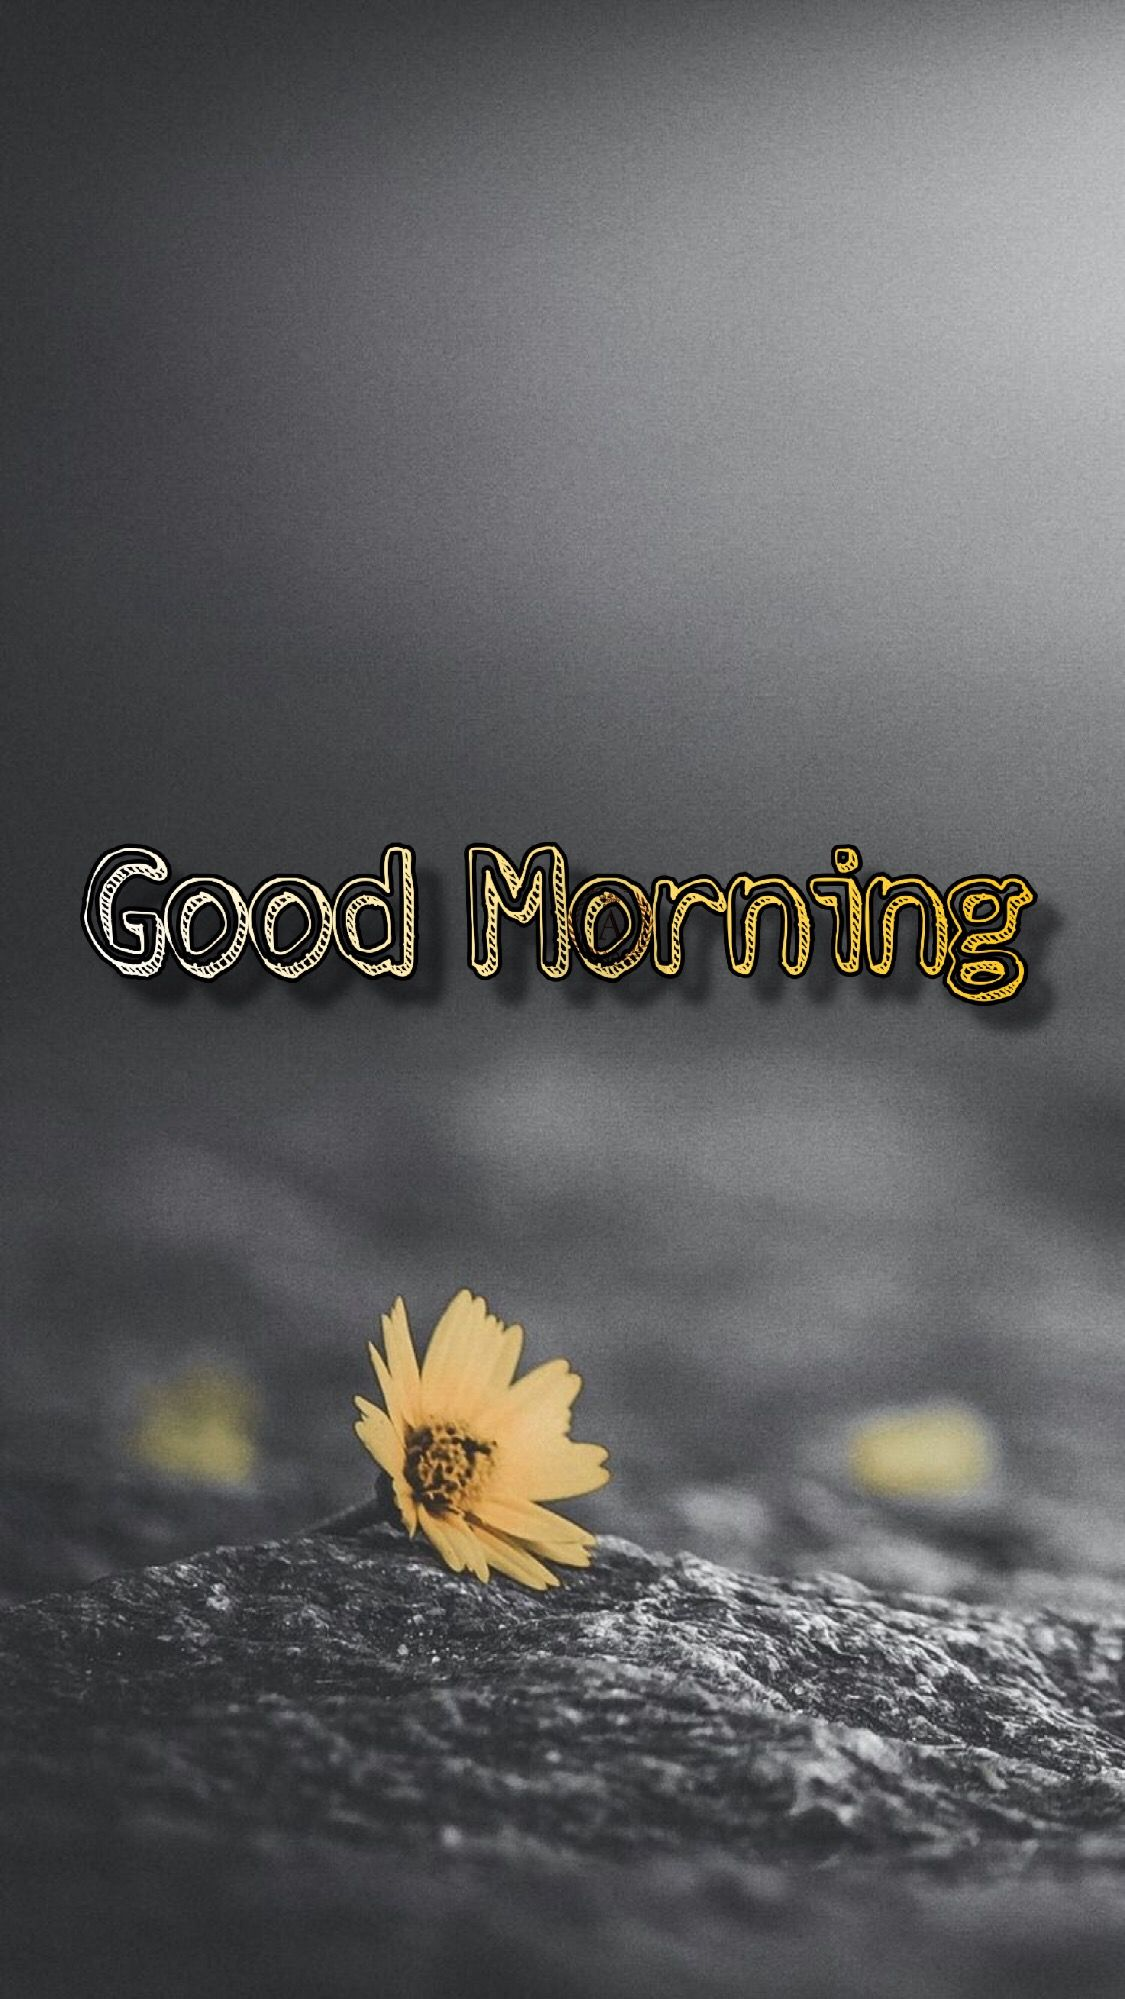 Pin By Droidlicious Diva On Good Morning Good Morning Images Good Morning Morning Images